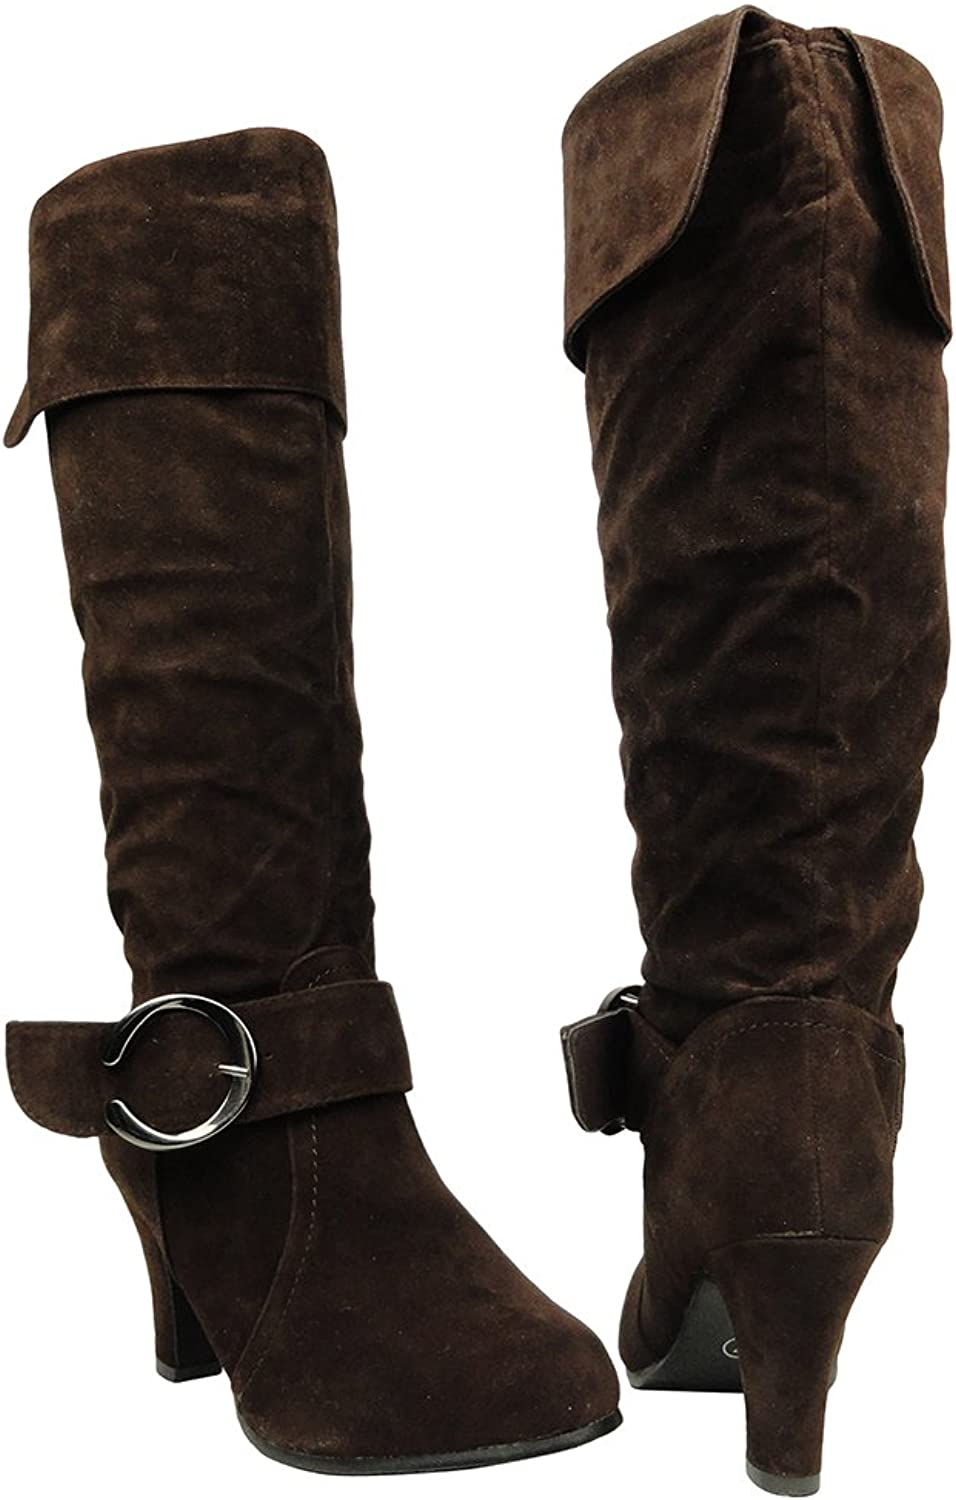 Womens Knee High Boots Folded Cuff Buckle Accent Side Zipper Closure